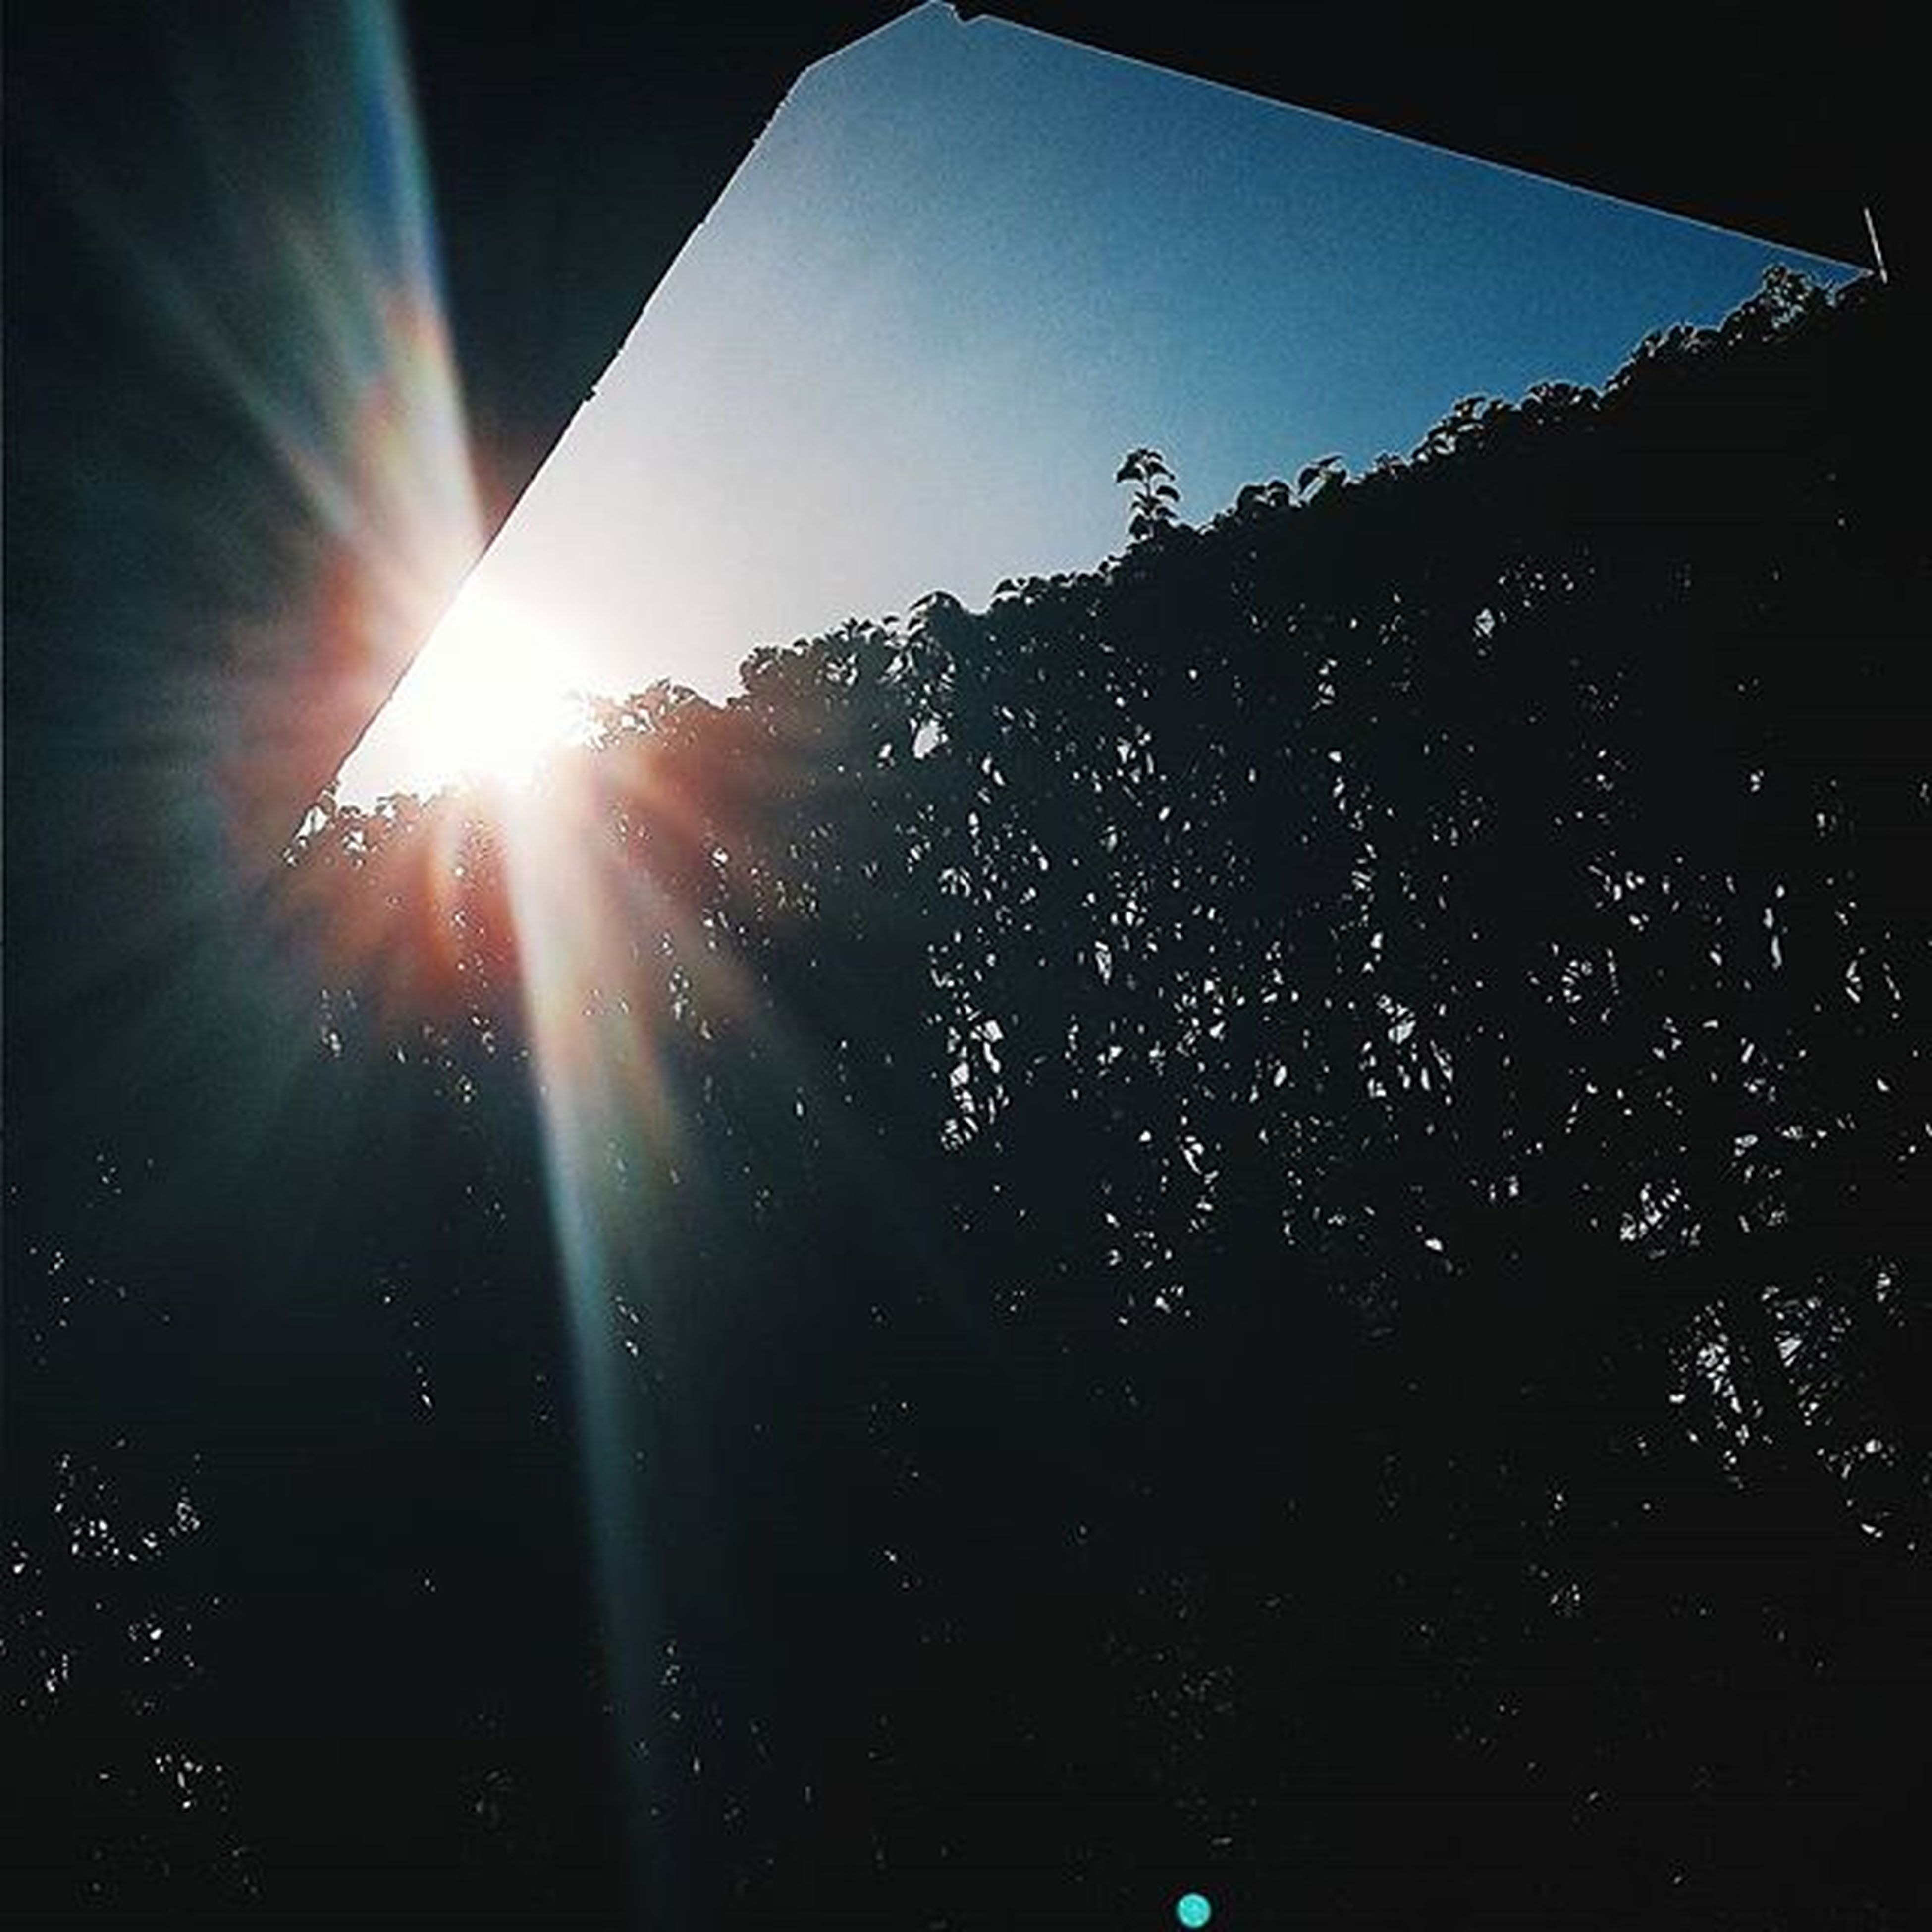 sun, sunbeam, lens flare, sunlight, bright, low angle view, sunny, clear sky, tree, sky, silhouette, nature, shining, streaming, brightly lit, back lit, beauty in nature, tranquility, built structure, shiny